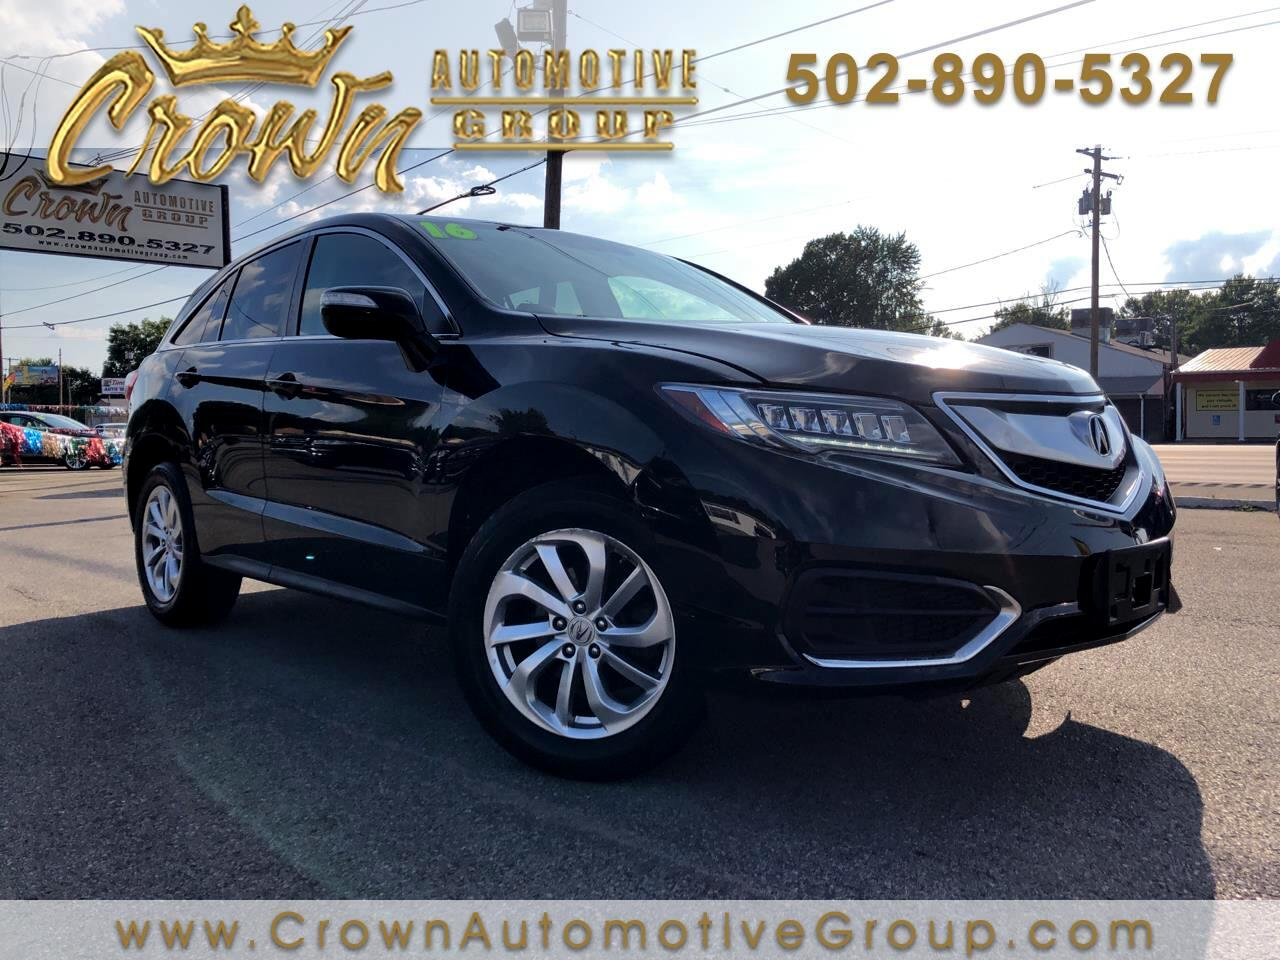 Cars For Sale In Louisville Ky >> Used Cars For Sale Louisville Ky 40258 Crown Automotive Group